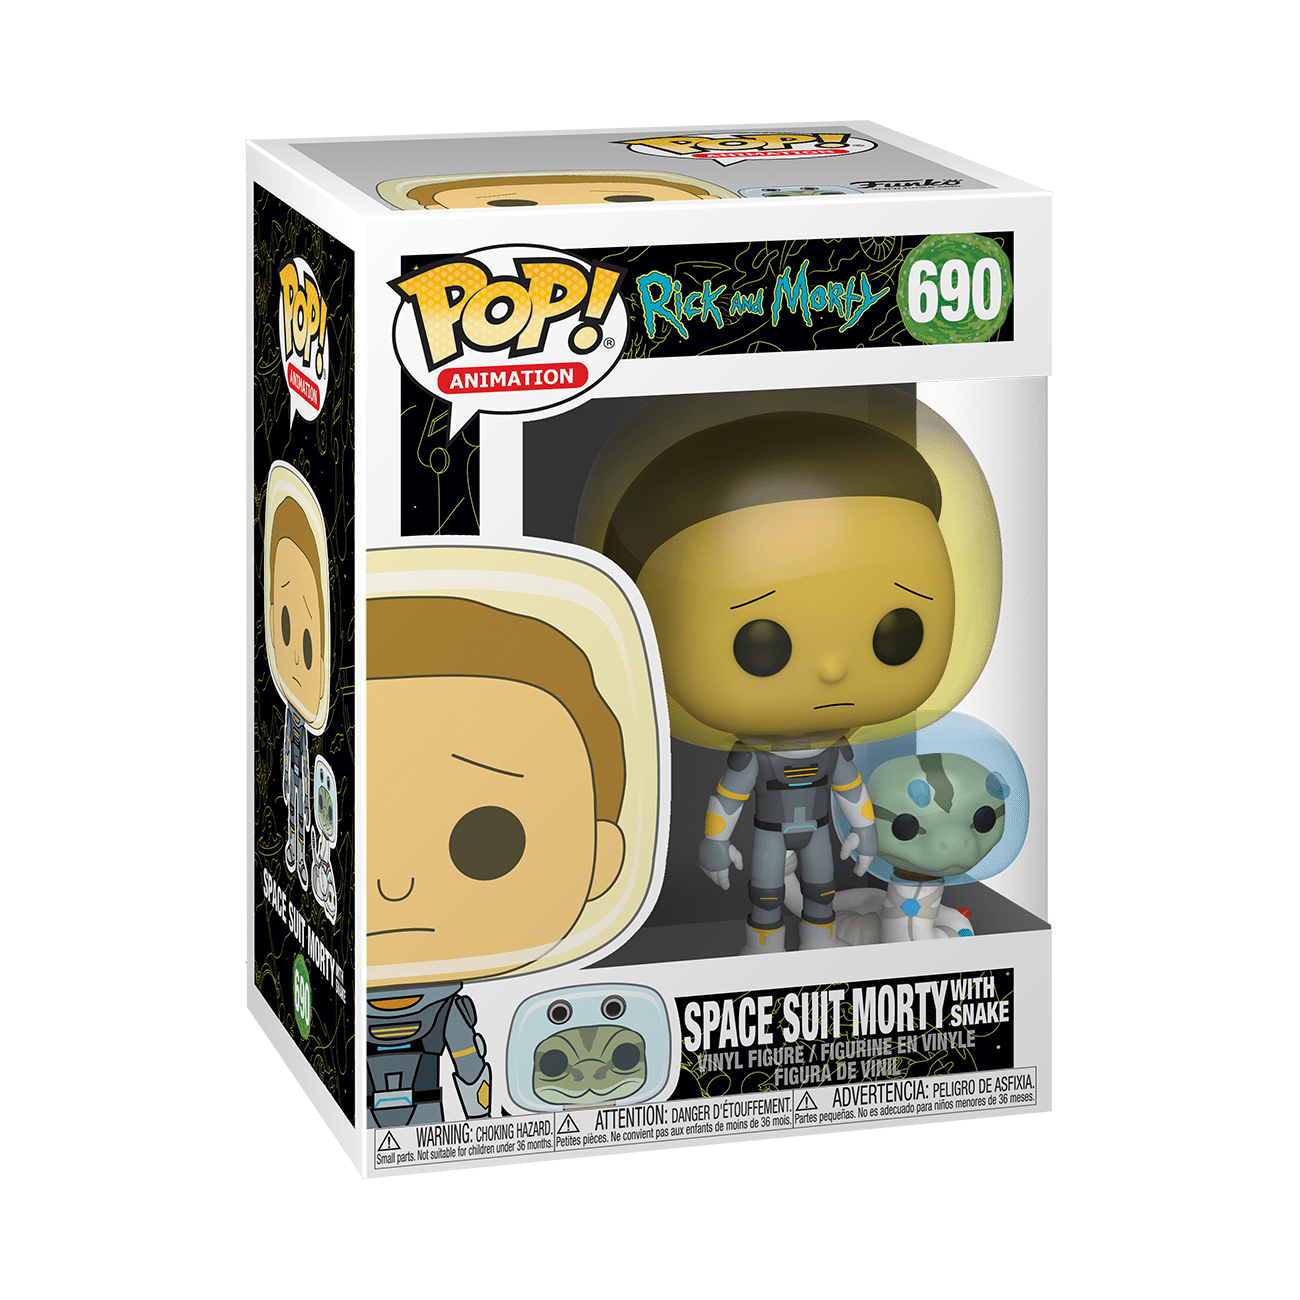 POP! Animation: Rick and Morty - Space Suit Morty with Snake